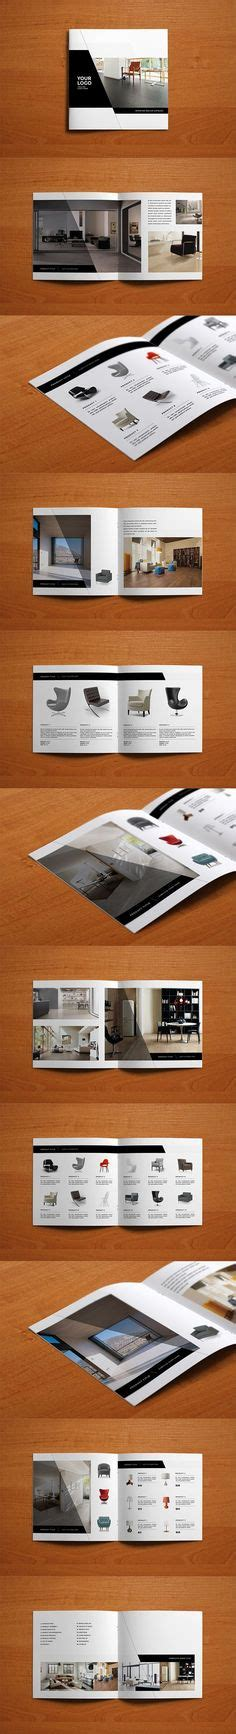 minimal interior design catalog by abradesign dribbble 디자인 리플렛 google 검색 리플릿 pinterest s 246 k